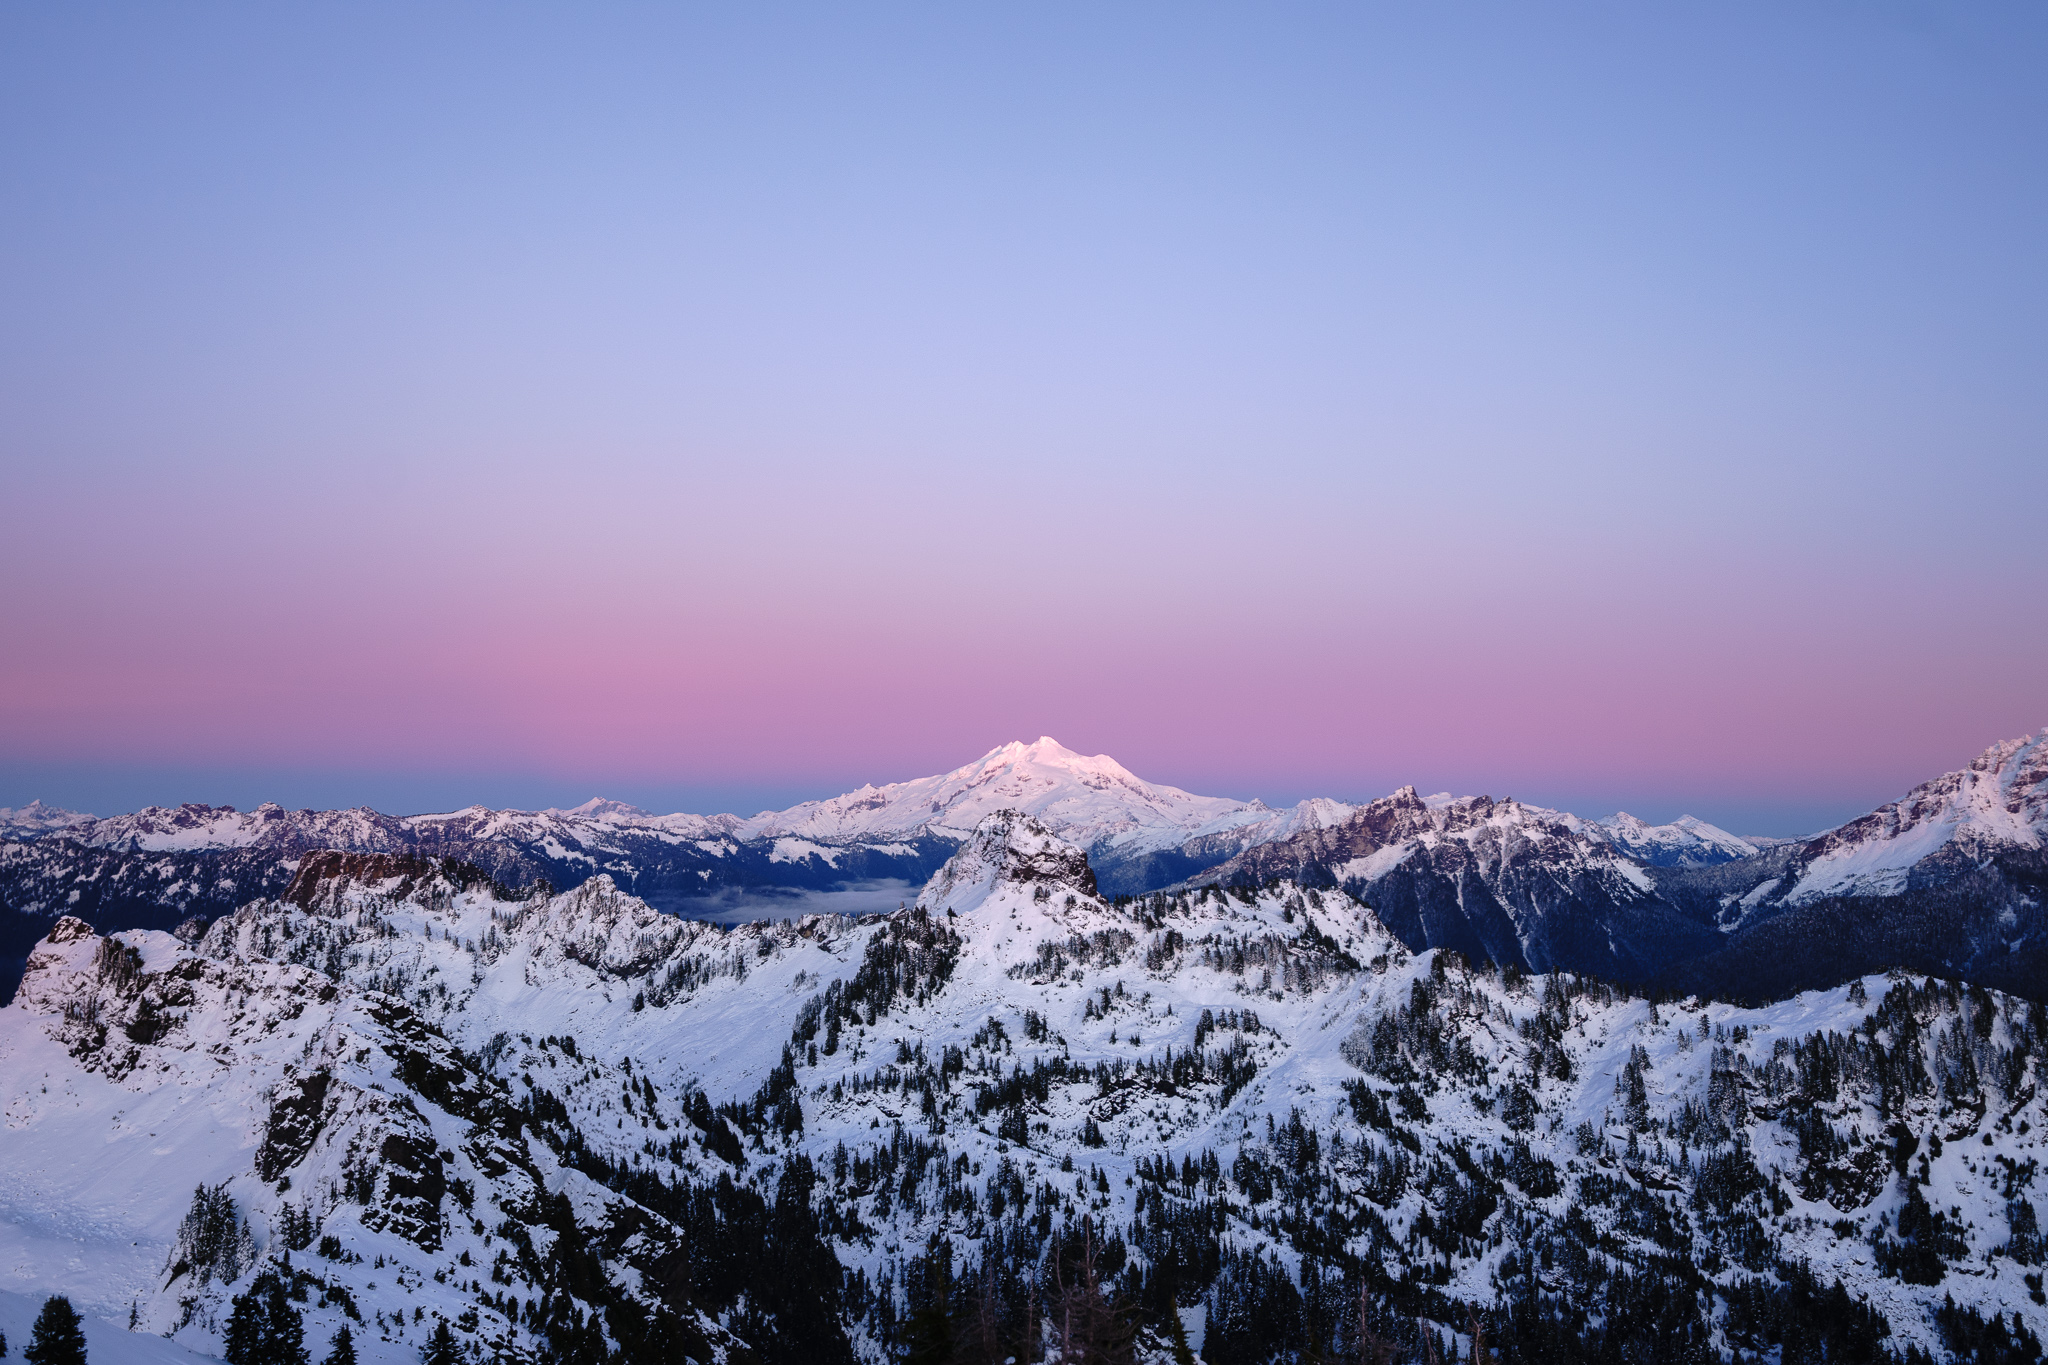 Glacier Peak lit up with the bright pink of the sky